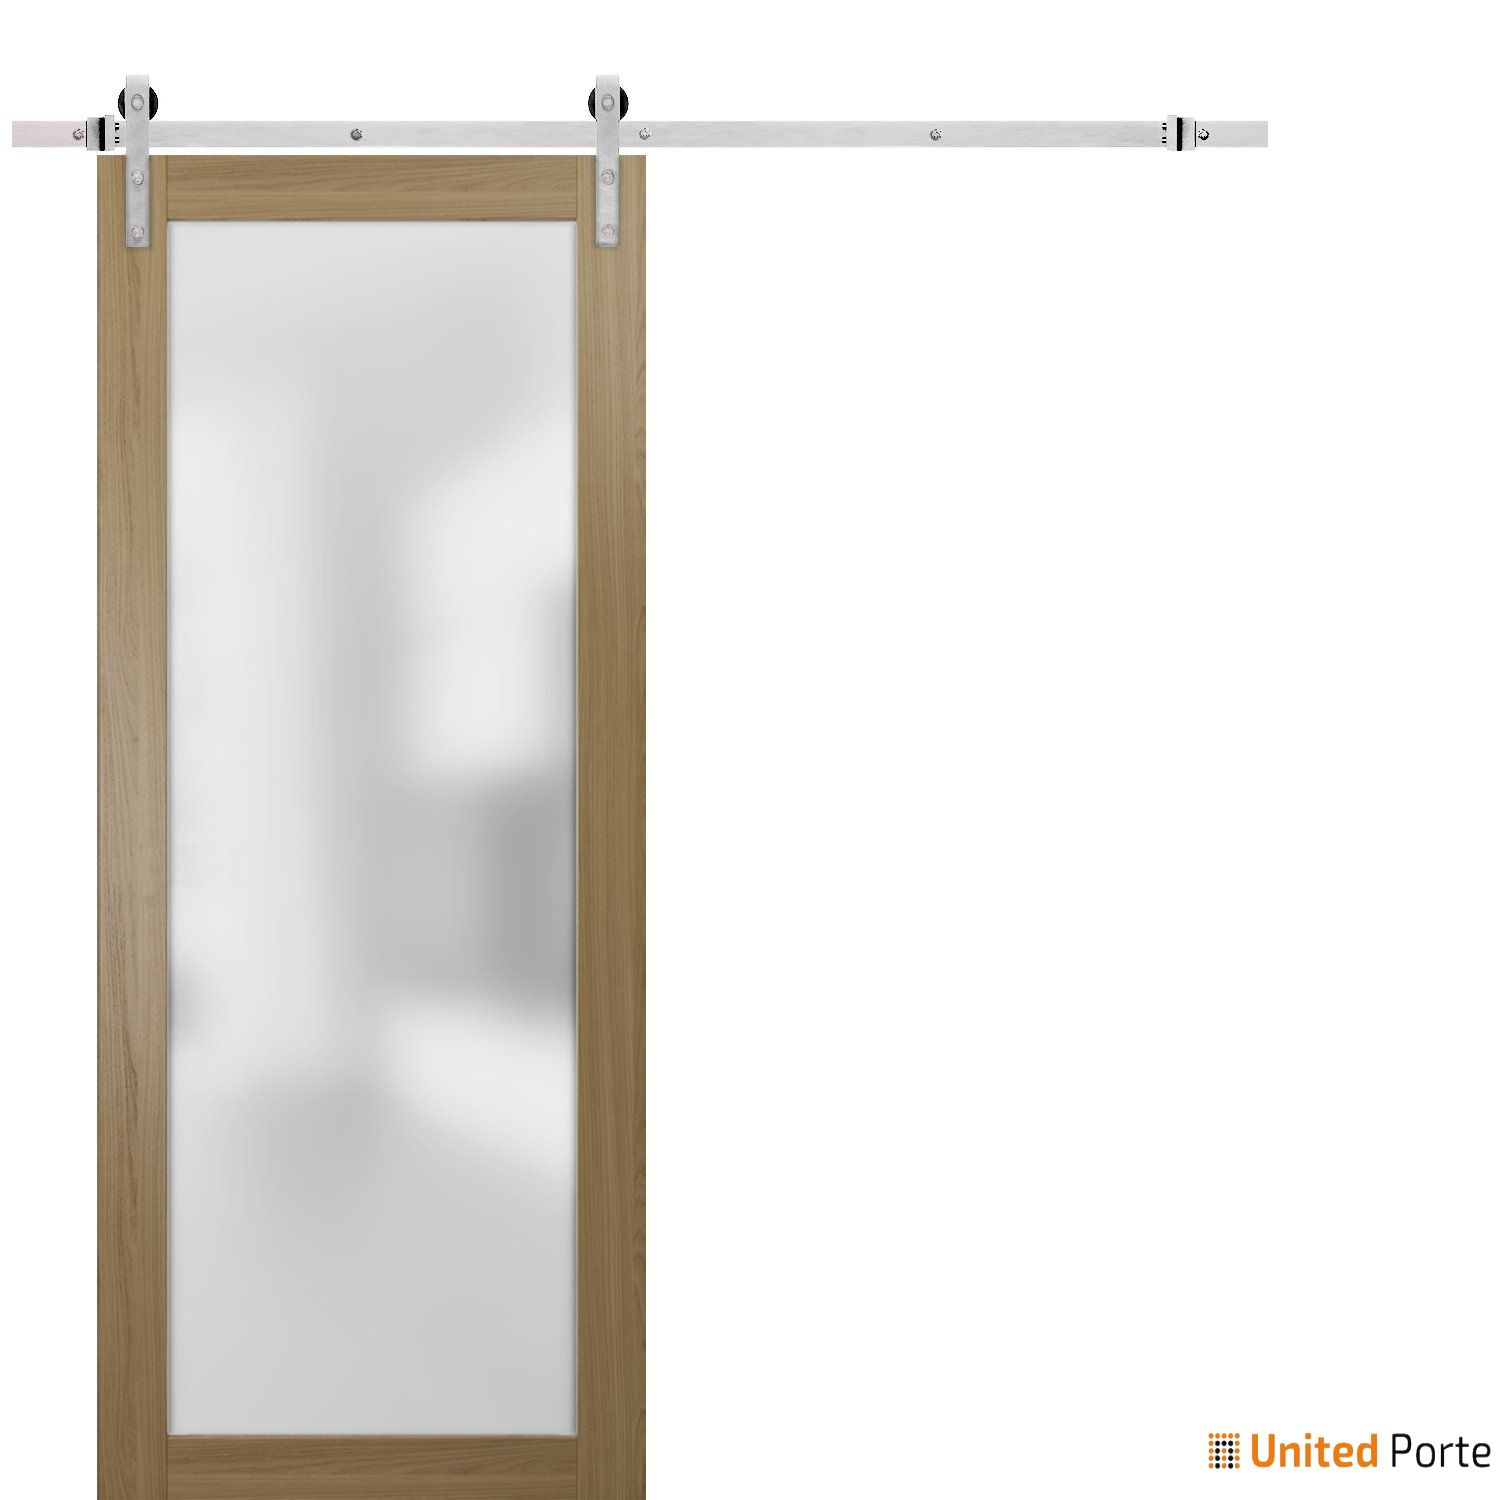 Planum 2102 Honey Ash Sturdy Barn Door Frosted Tempered Glass with Stainless Hardware | Modern Solid Panel Interior Barn Doors